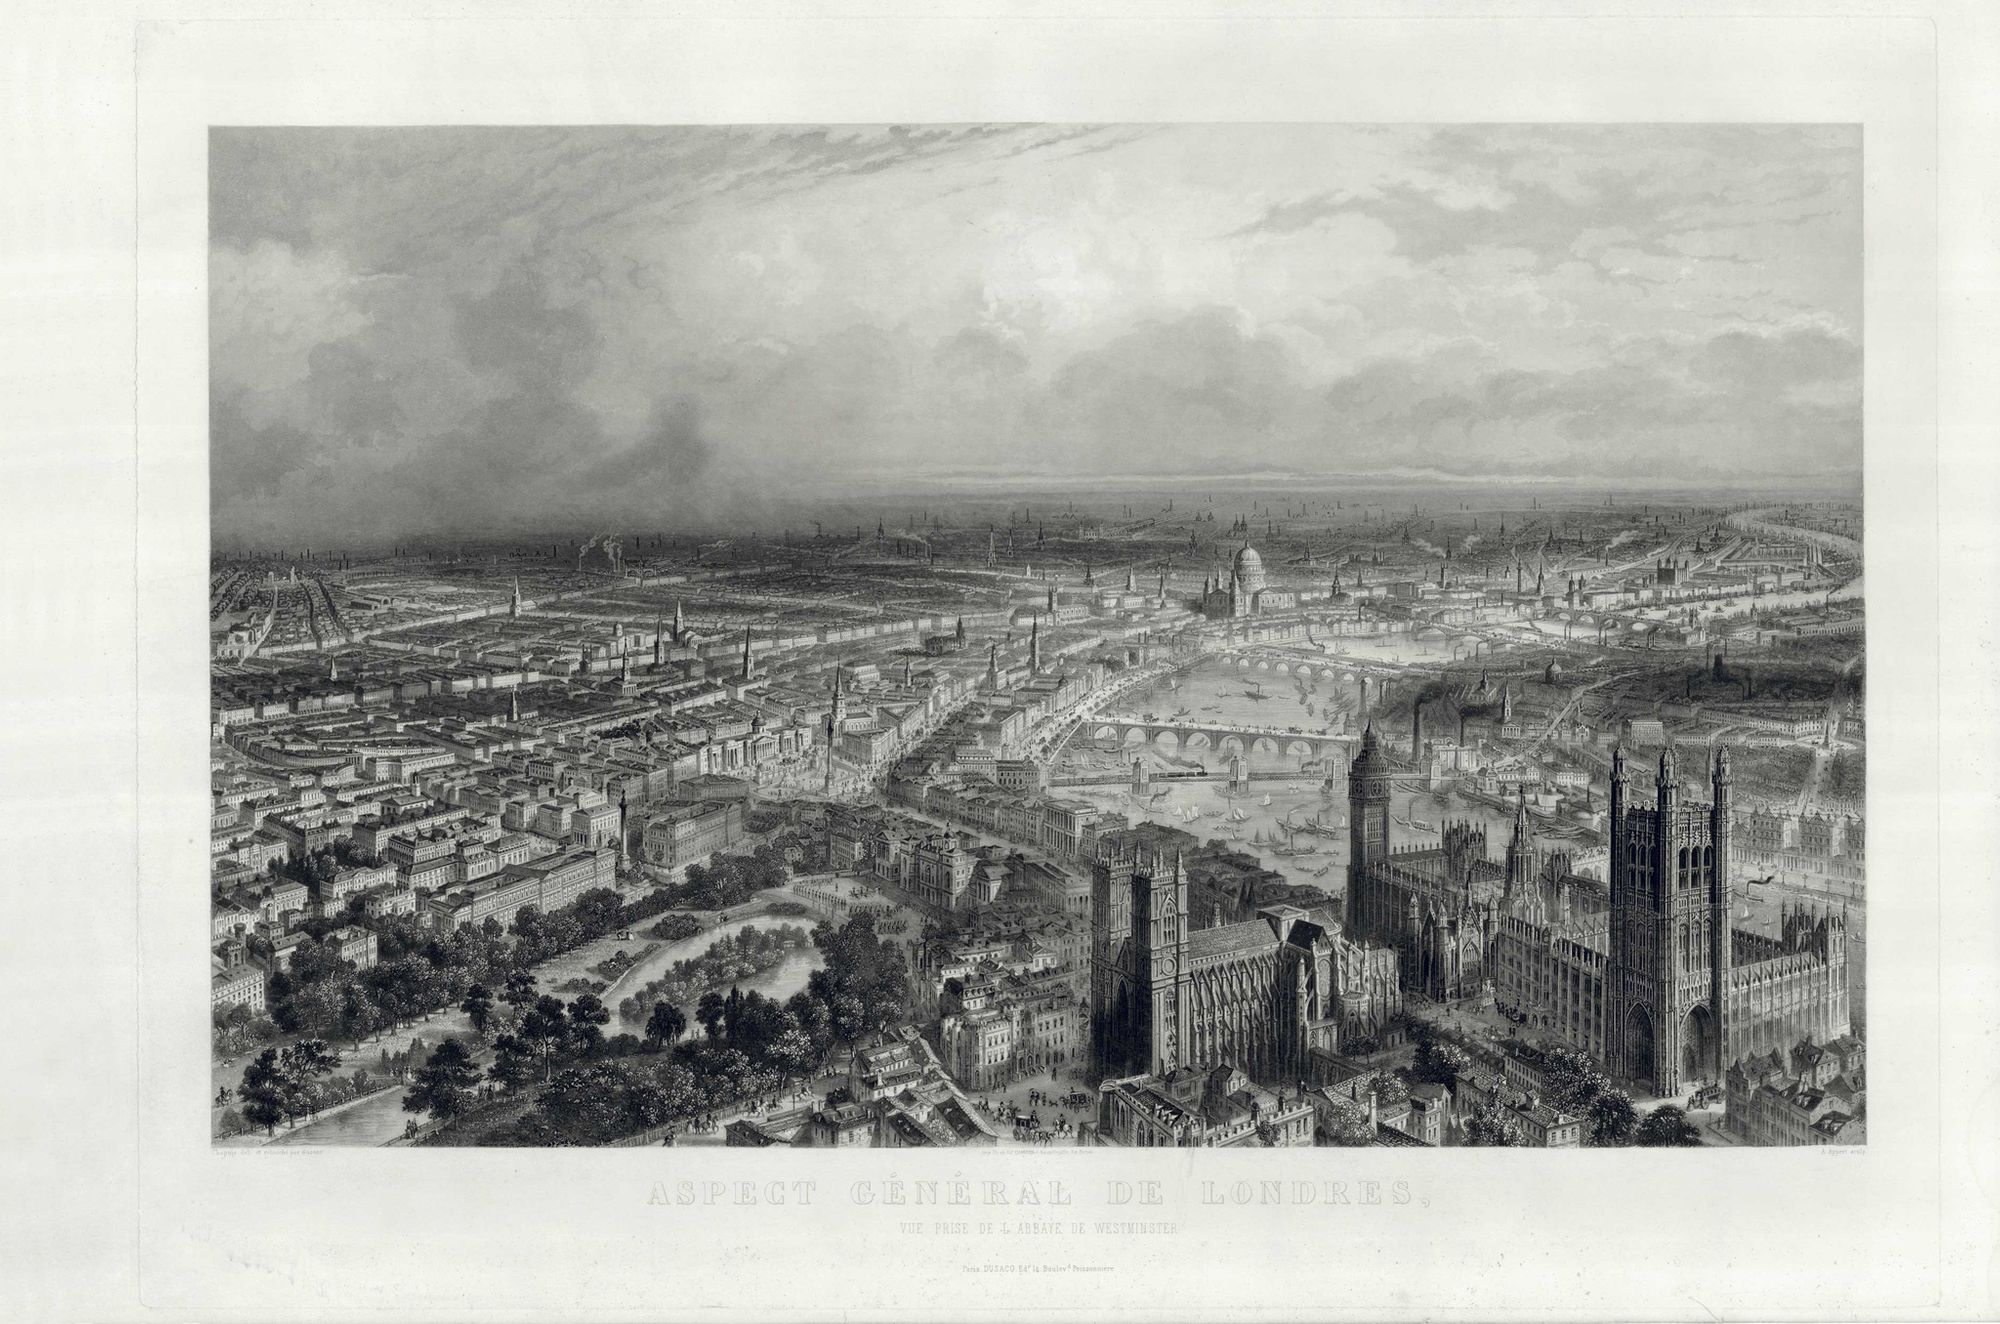 Balloon view of the City of Westminster eastwards to The City of London 1870.